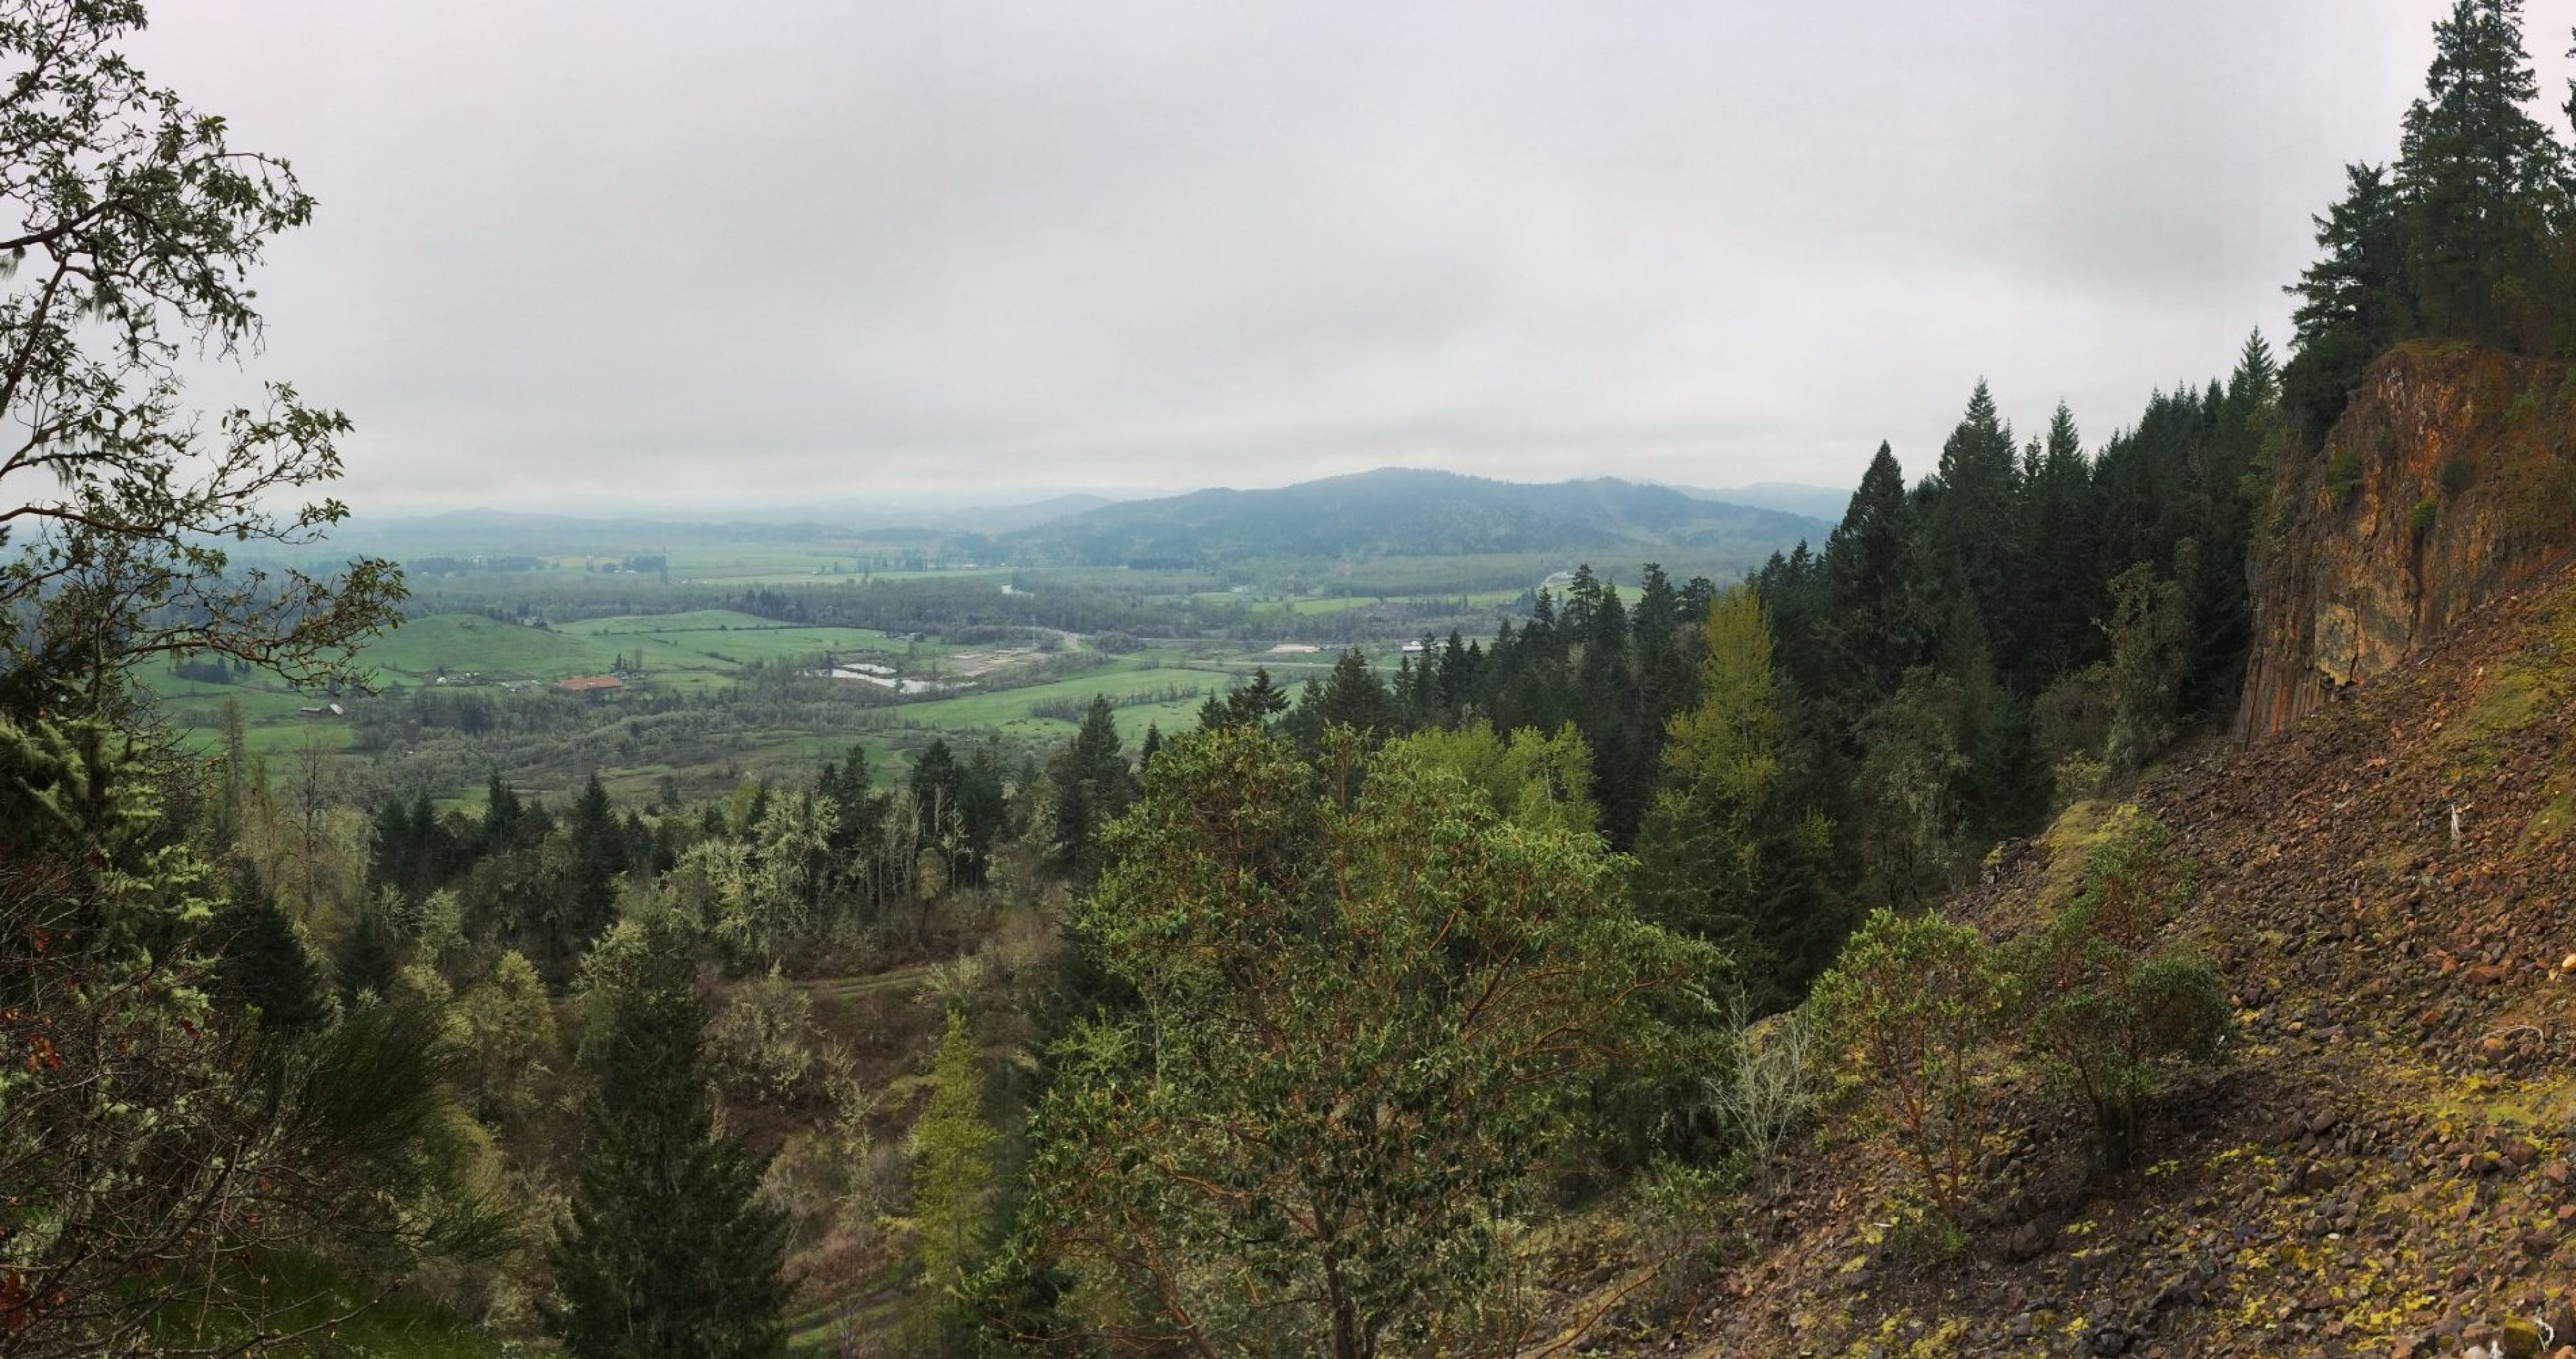 View from Thurston Hills toward Middle Fork Willamette